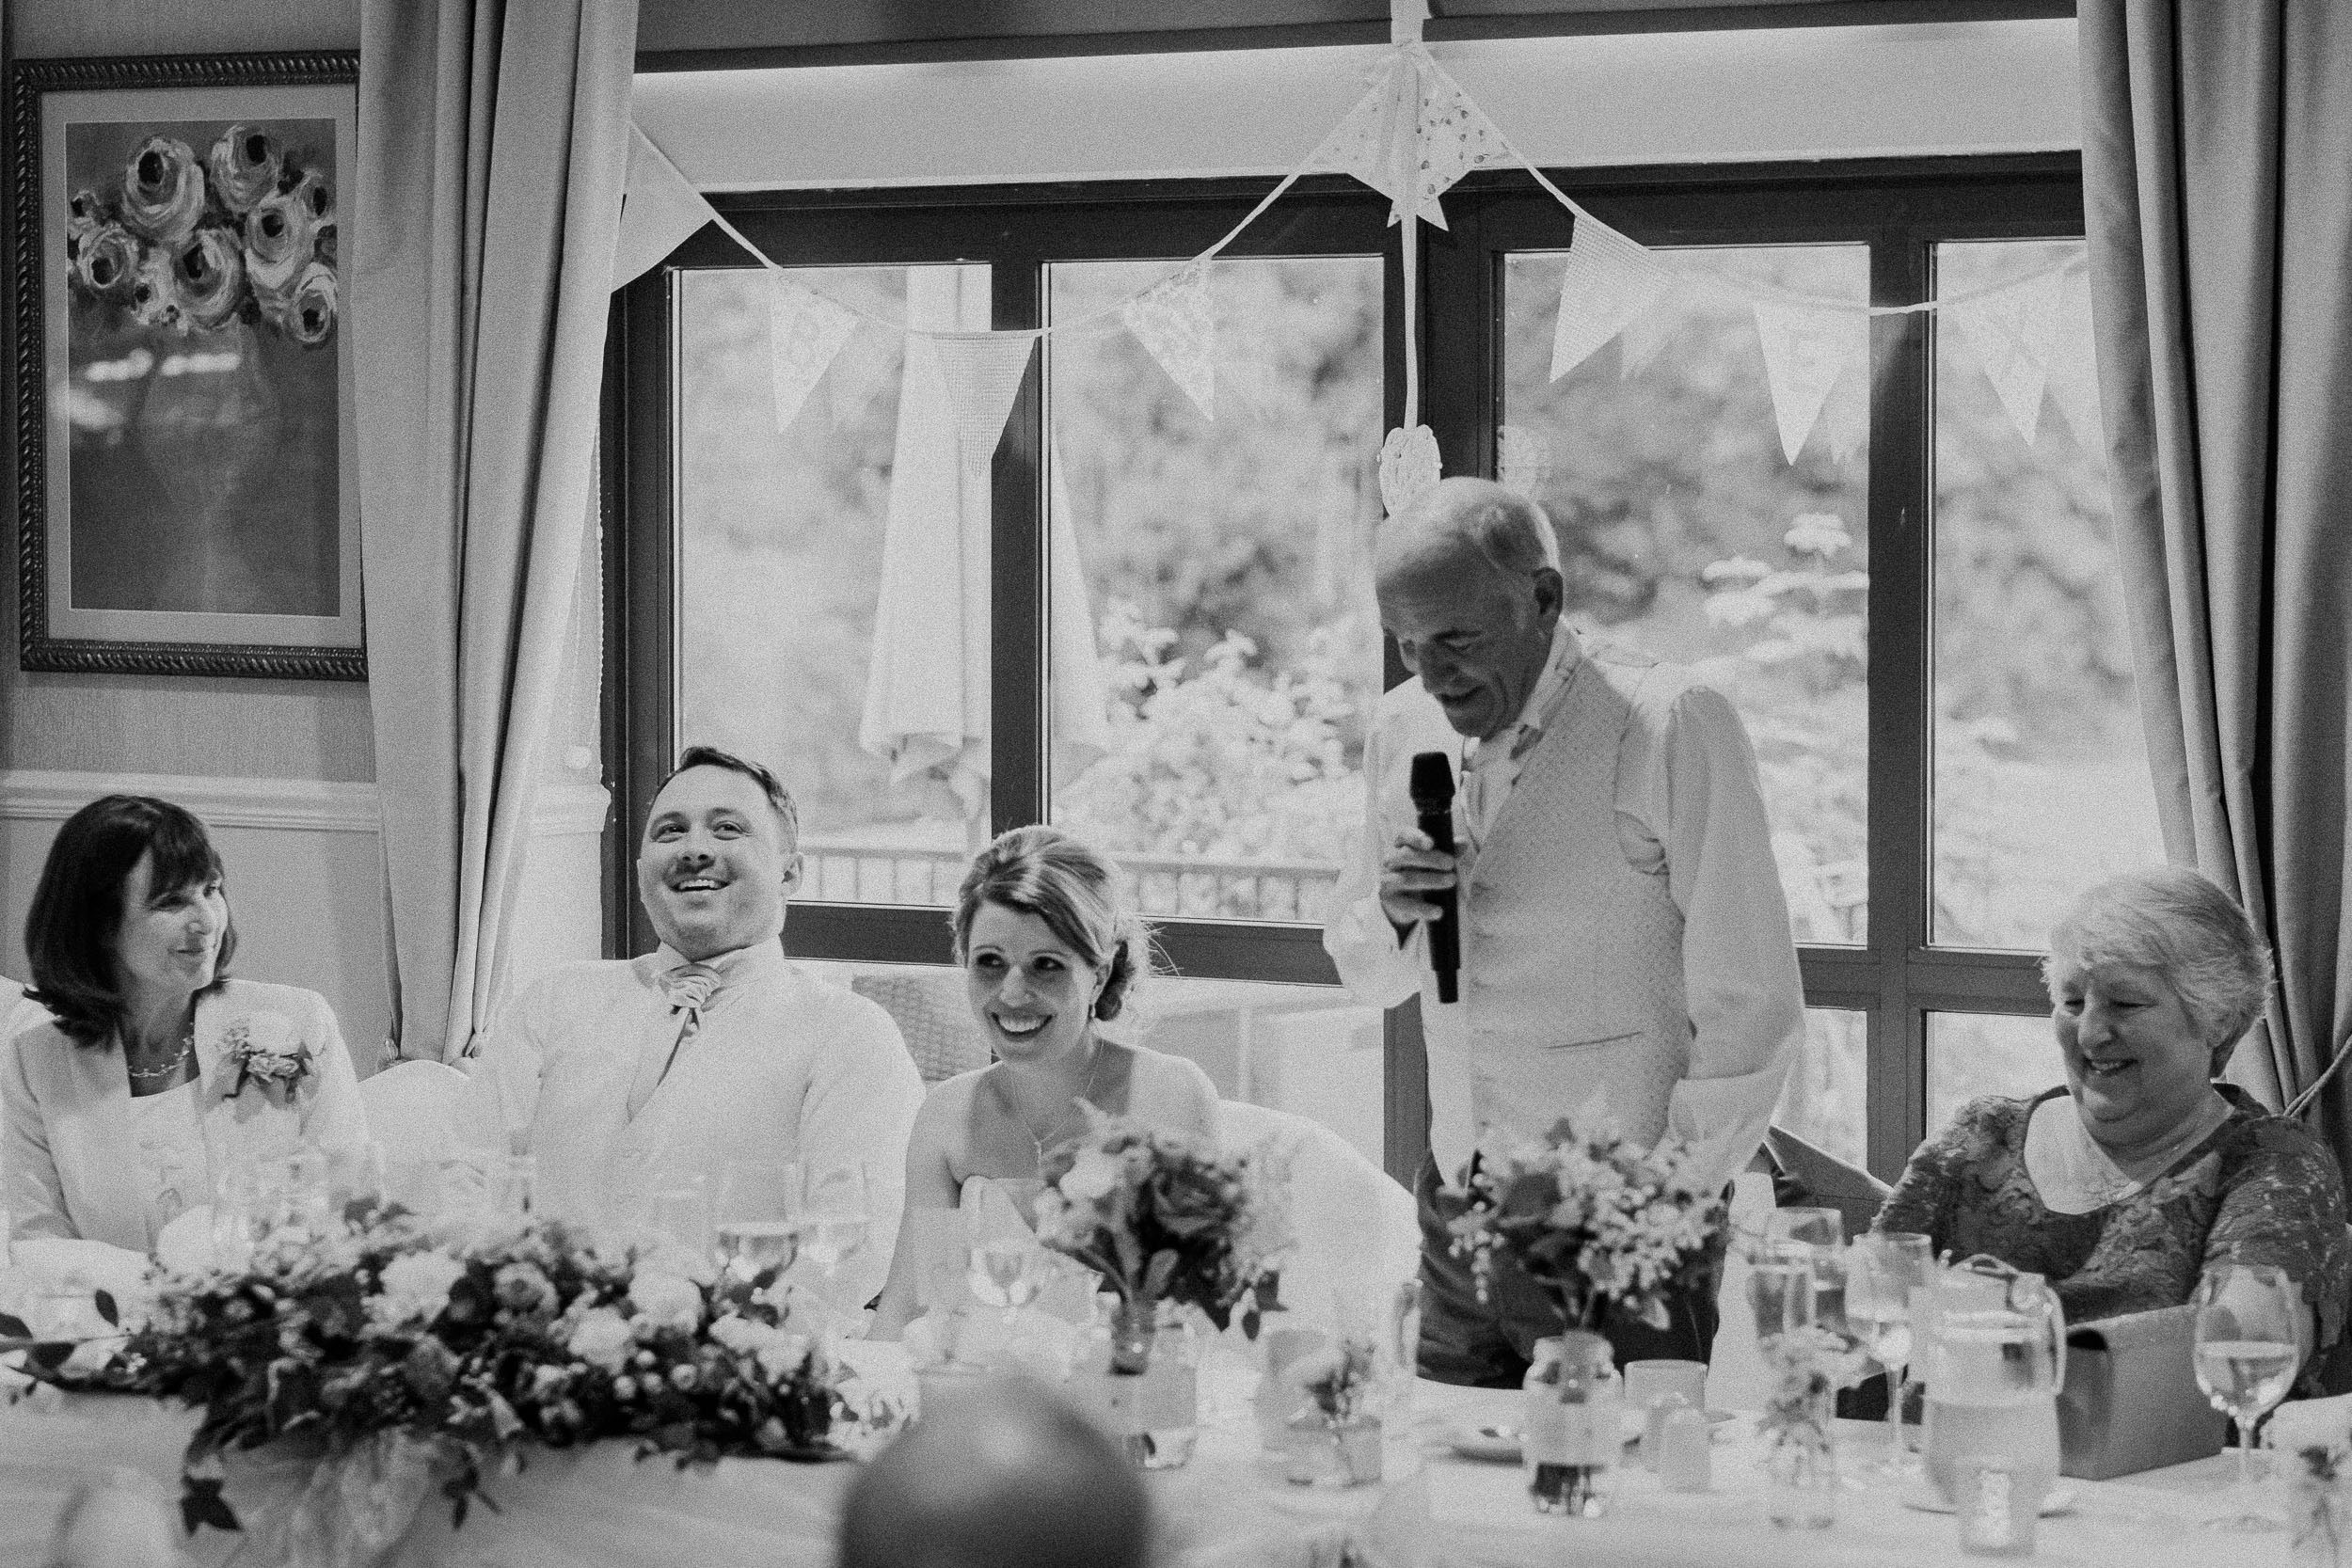 Black and white photo of the father of the bride giving a funny speech